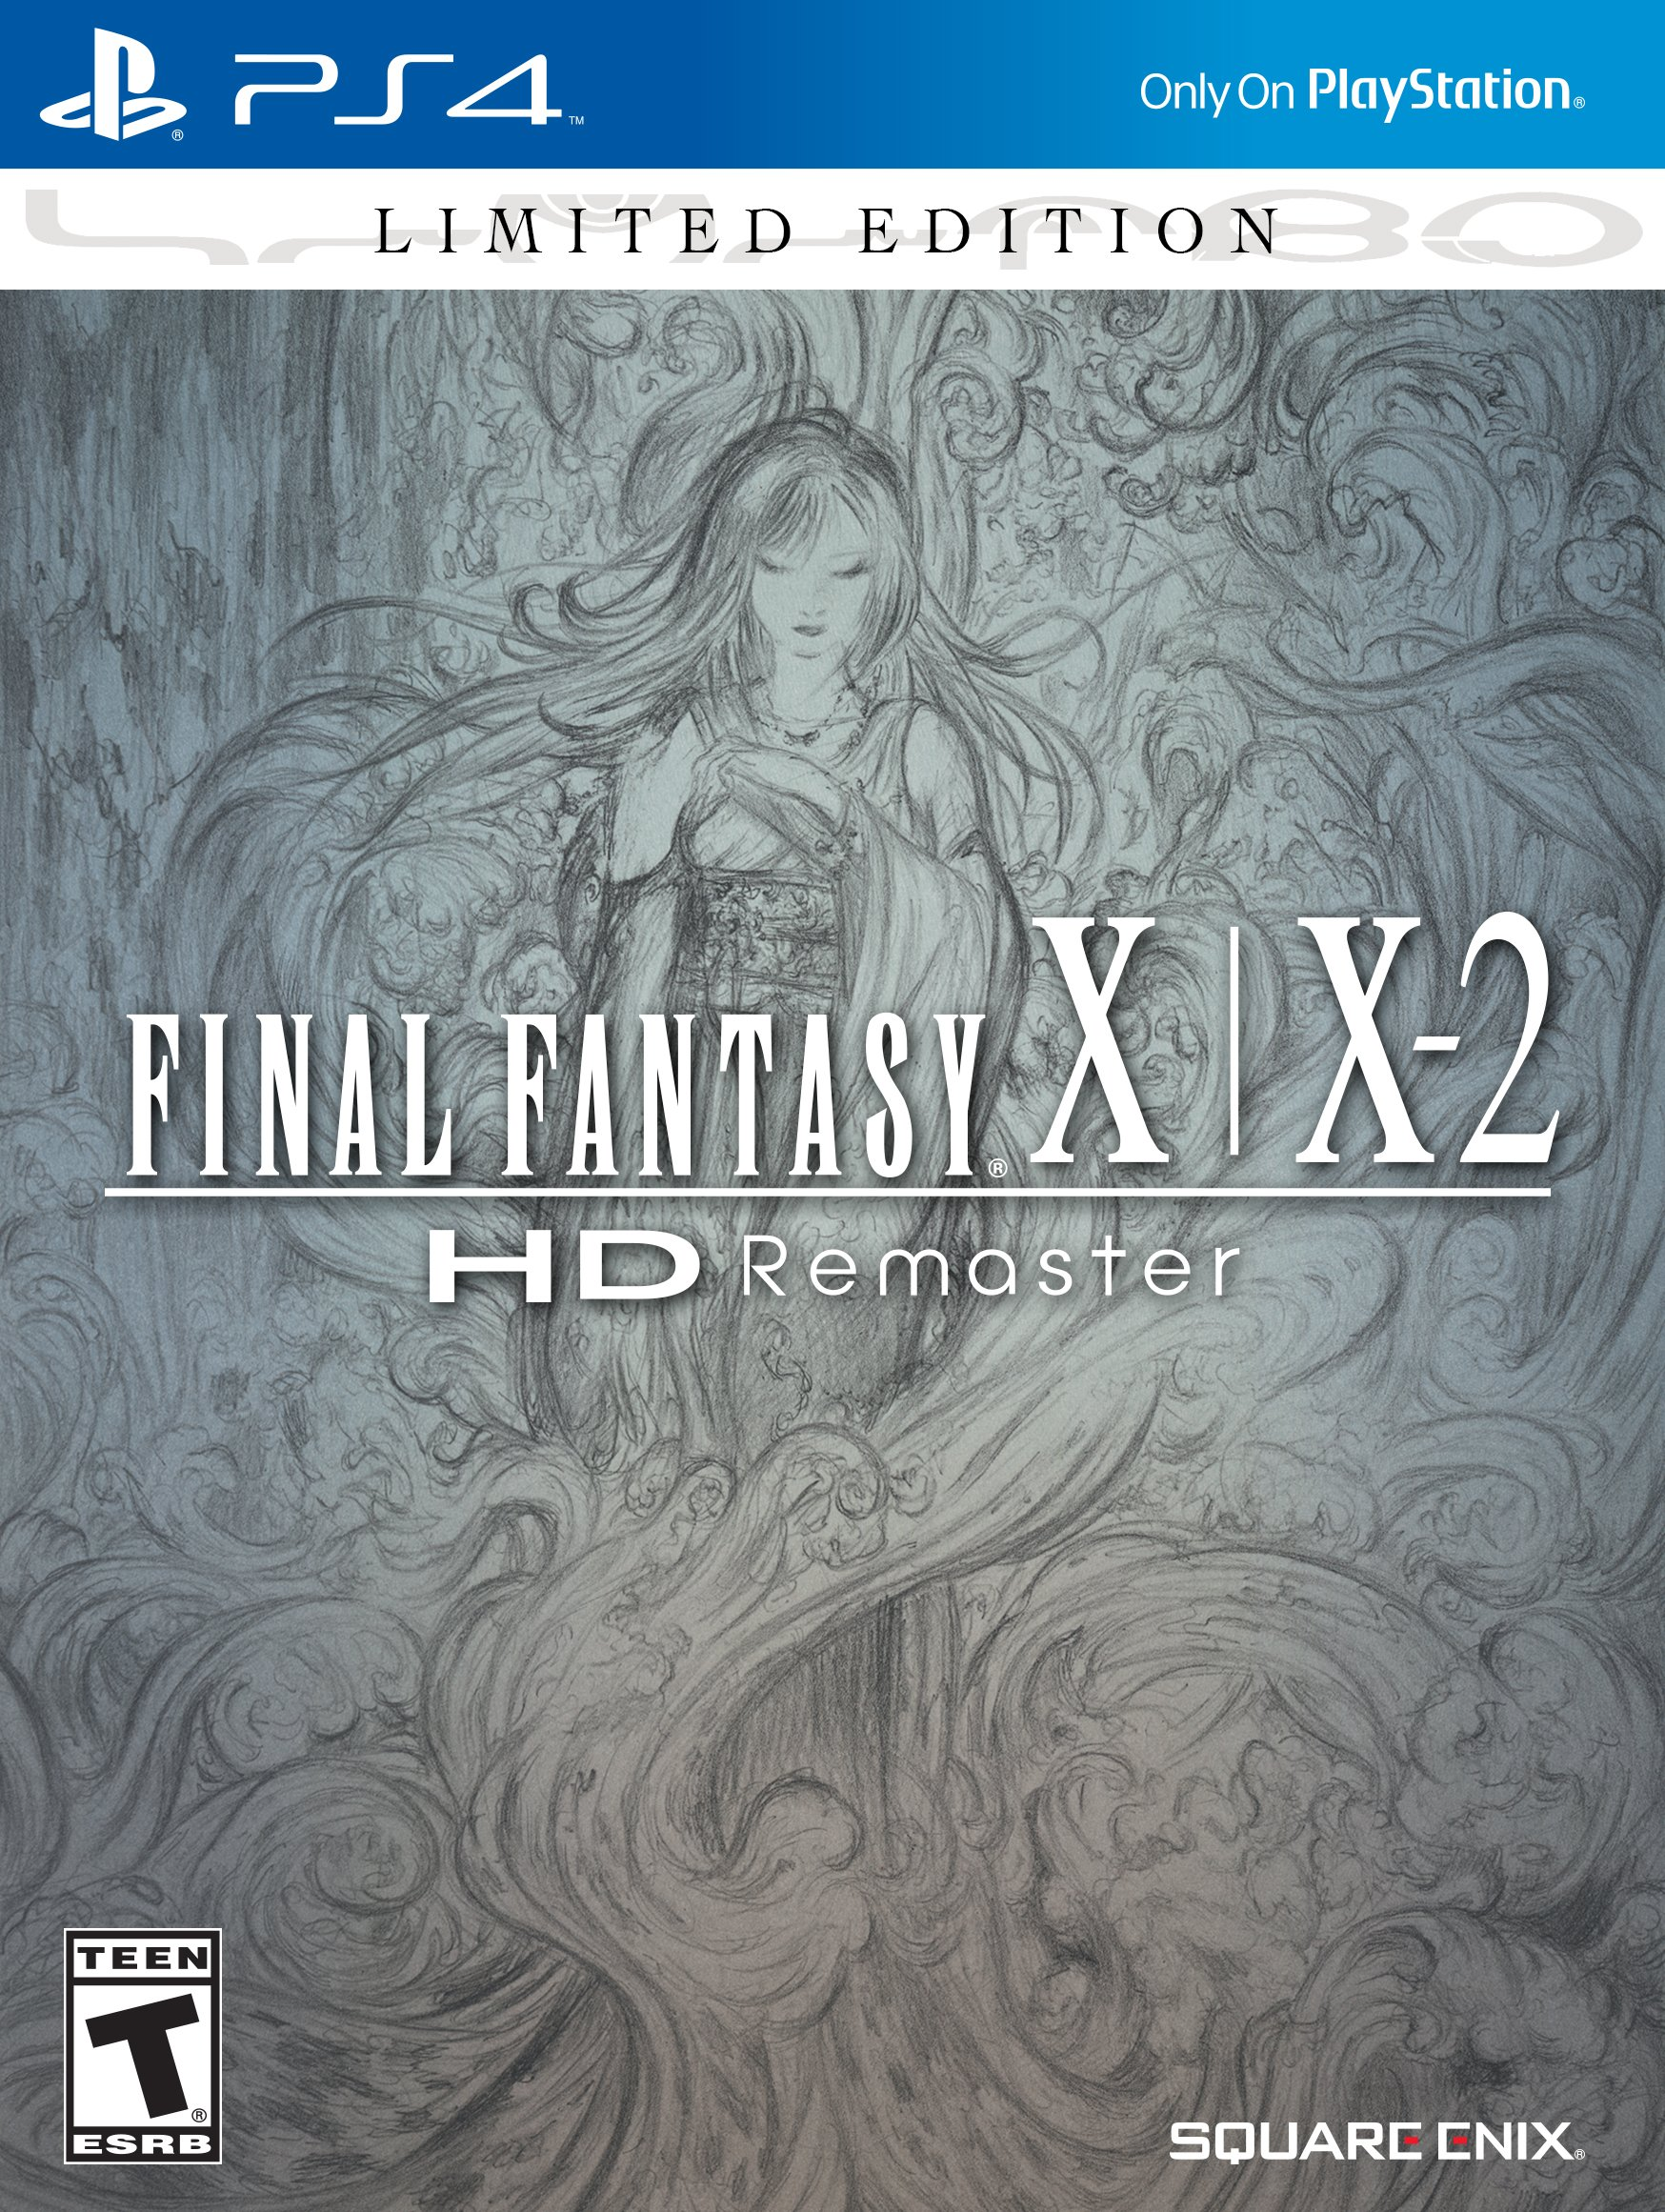 FINAL FANTASY X/X-2 HD Remaster Limited Edition Release ...